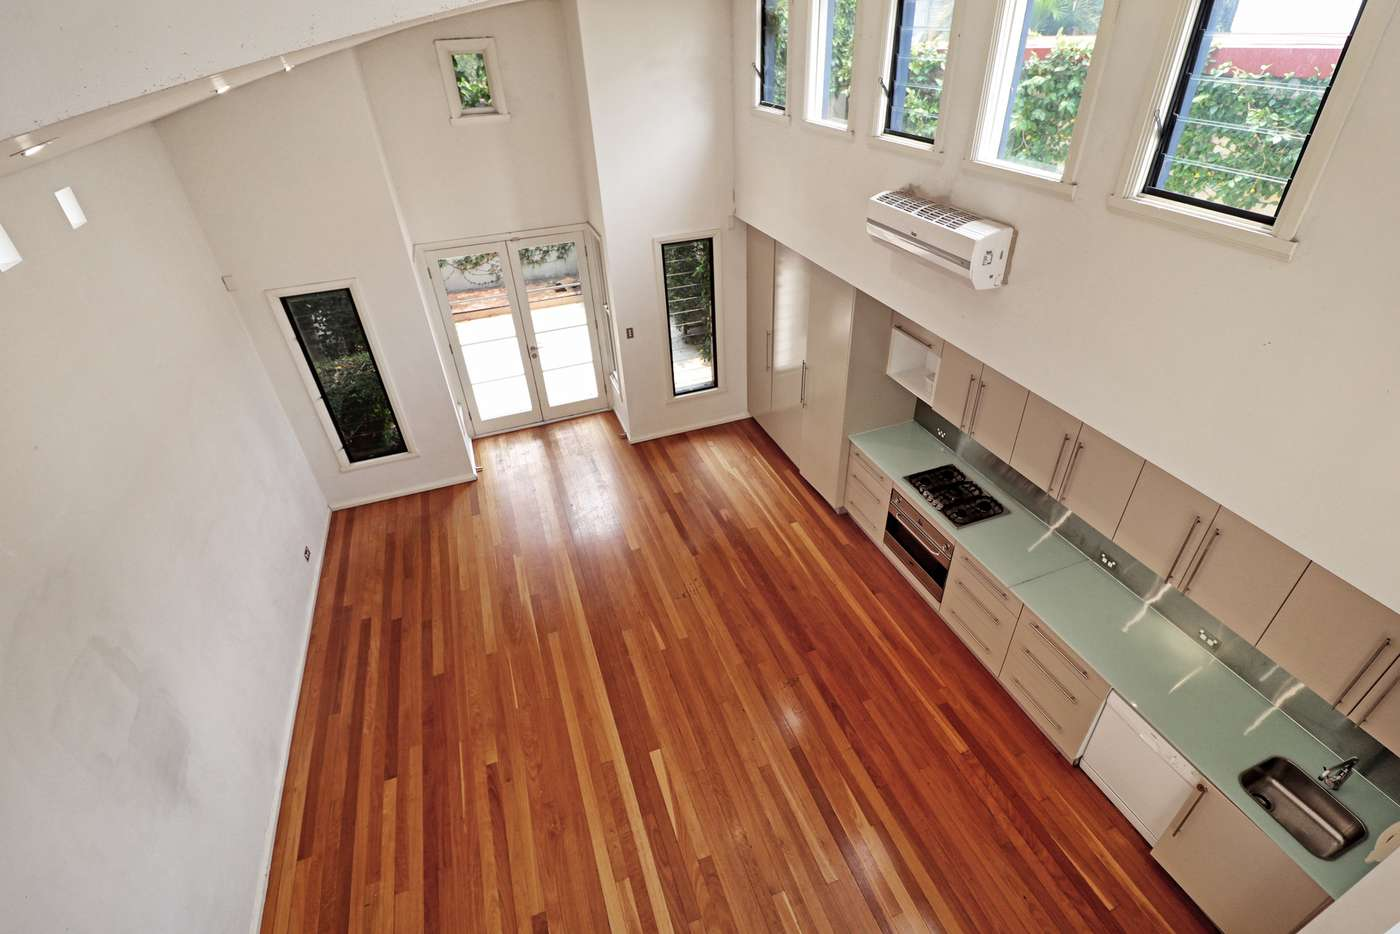 Seventh view of Homely house listing, 115 Mill Hill Road, Bondi Junction NSW 2022